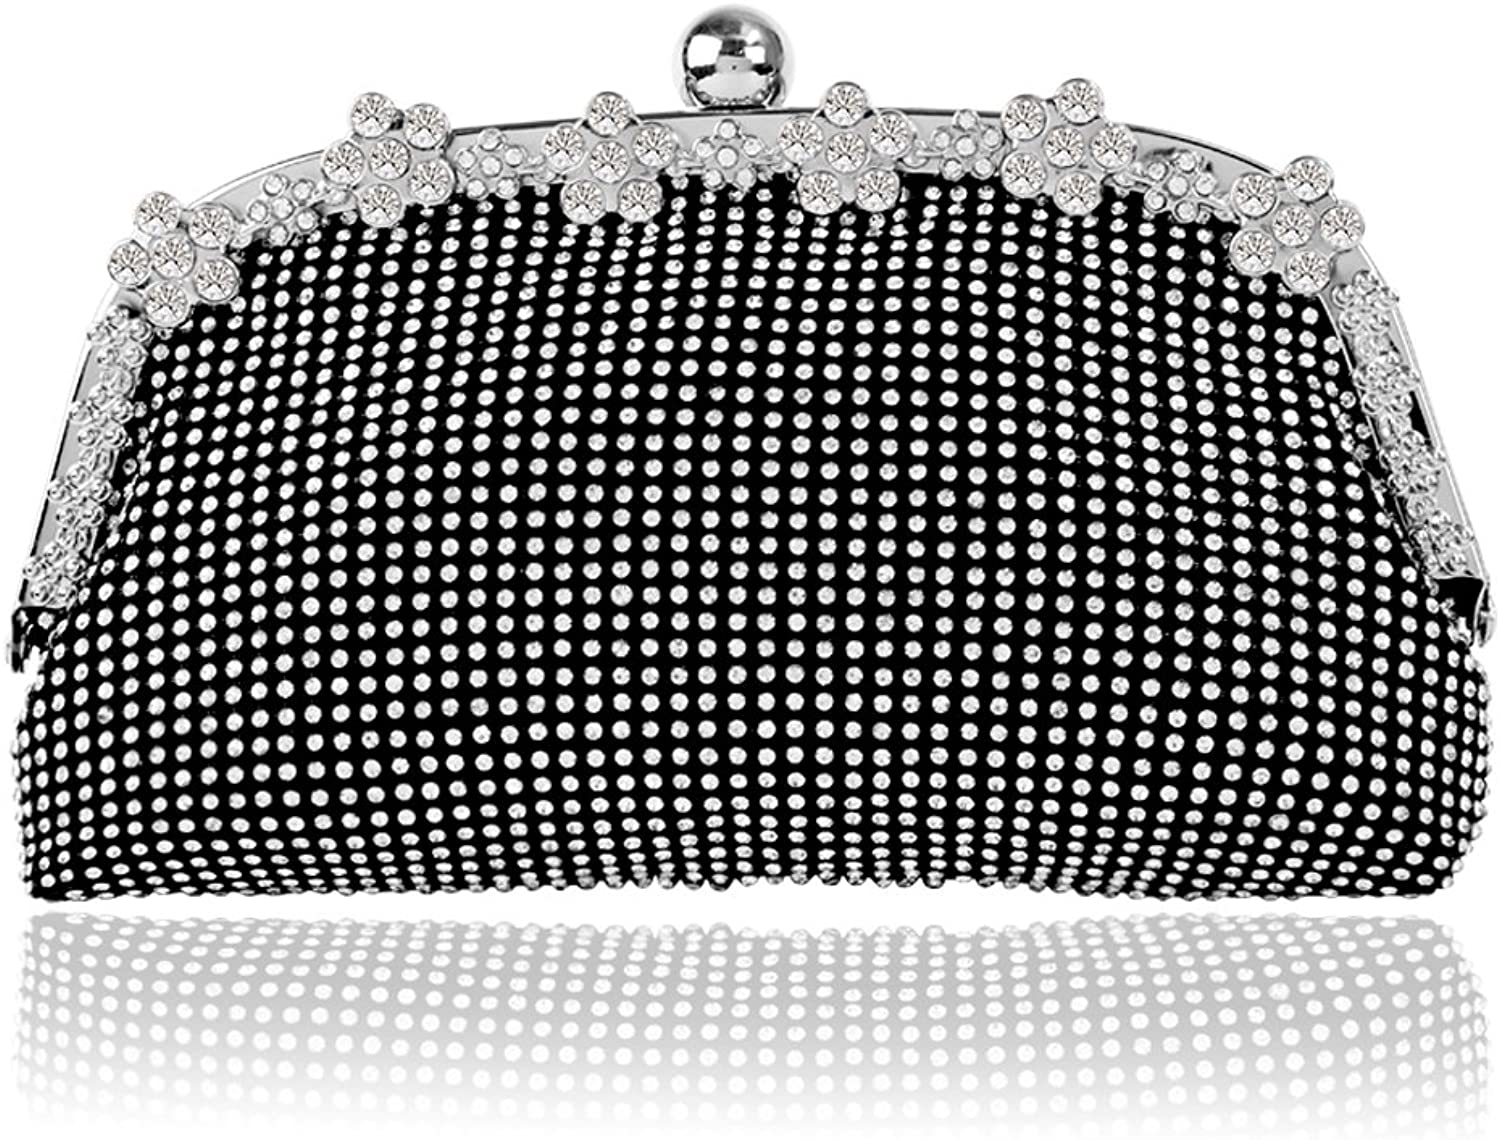 Bagood Full Shining Rhinestones Handbags For Women's Wedding Party Evening Clutches Purses